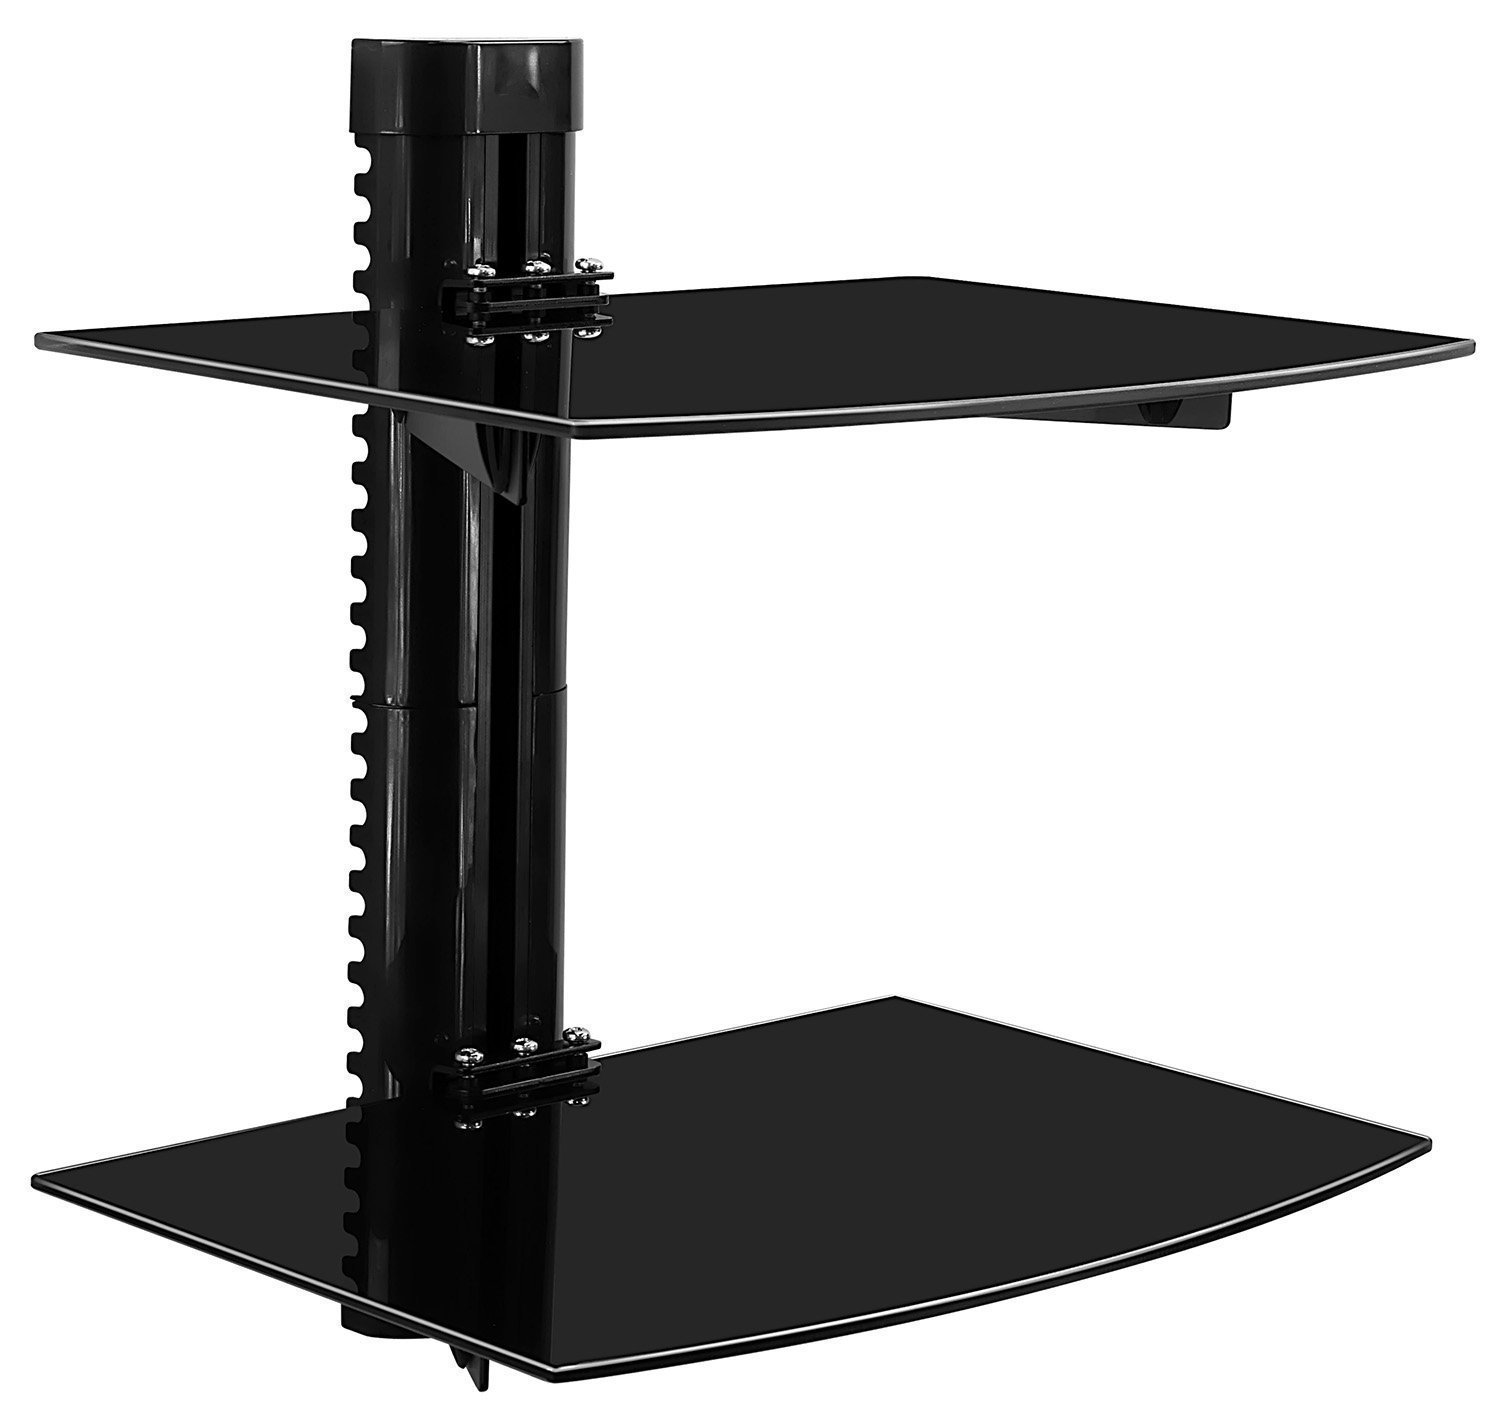 Mount-It! Floating Wall Mounted Shelf Bracket Stand for AV Receiver, Component, Cable Box, Playstation4, Xbox1, DVD Player, Projector, 35.2 Lbs Capacity, 2 Shelves, Tinted Tempered Glass